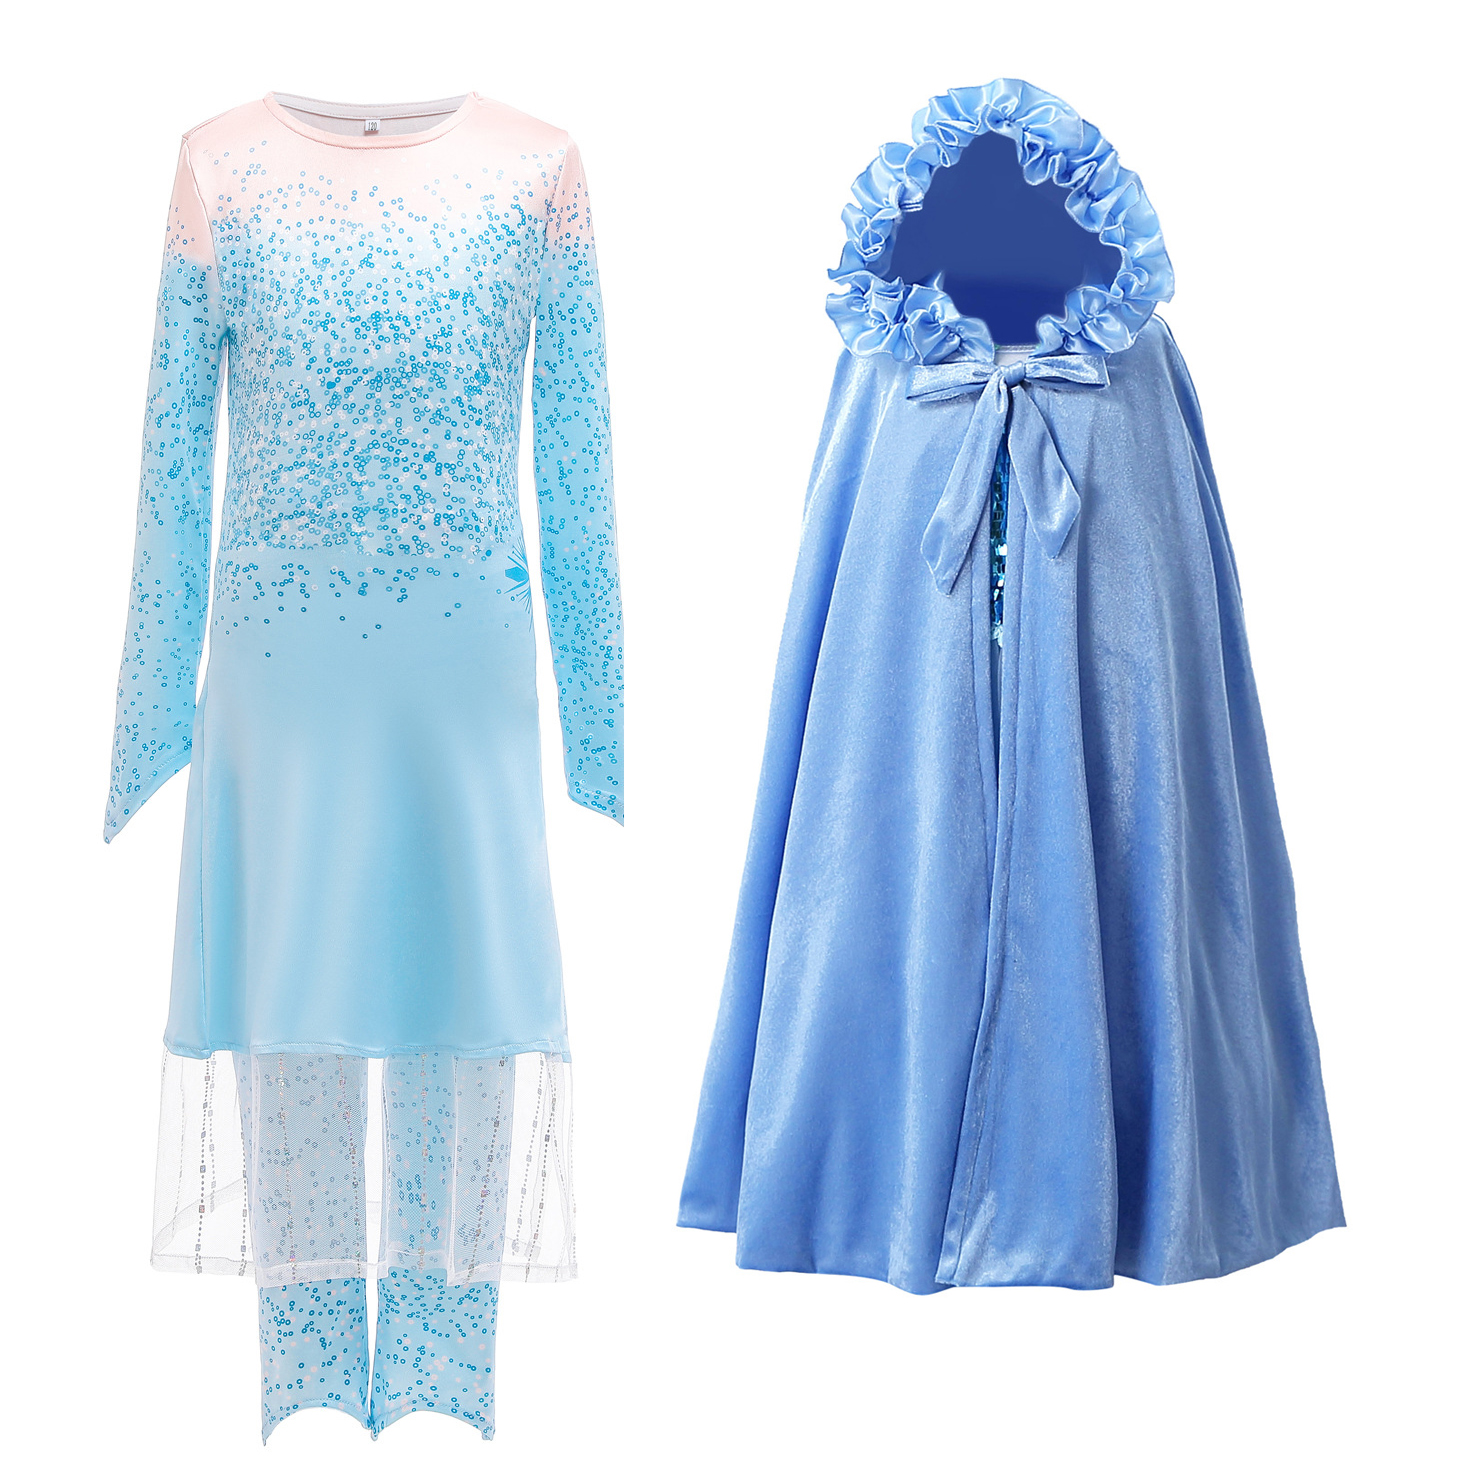 New Dress For Girls Clothing Frozen 2 Aisha Princess Set Christmas Cosplay Elsa Birthday Party Sky Blue Princess Dress 3-12 Year